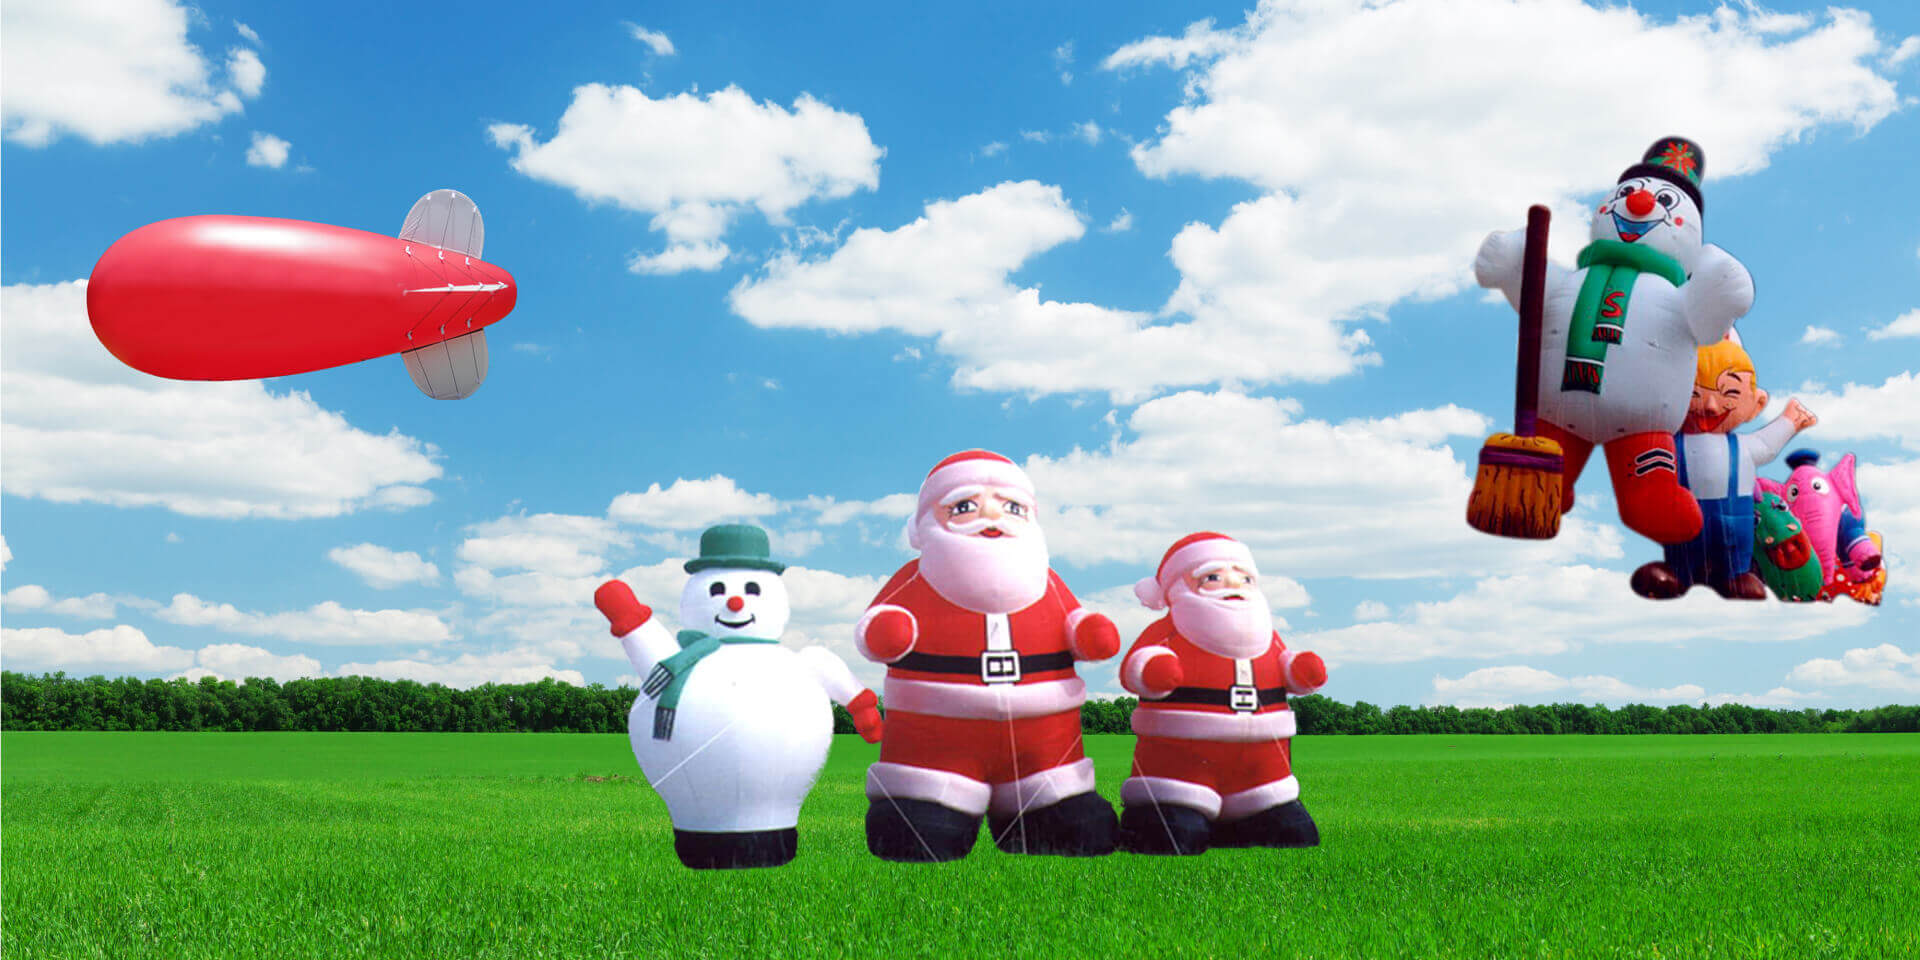 Helium blimp and standing snowman and Santa Claus balloon空飄氣球與立地氣球